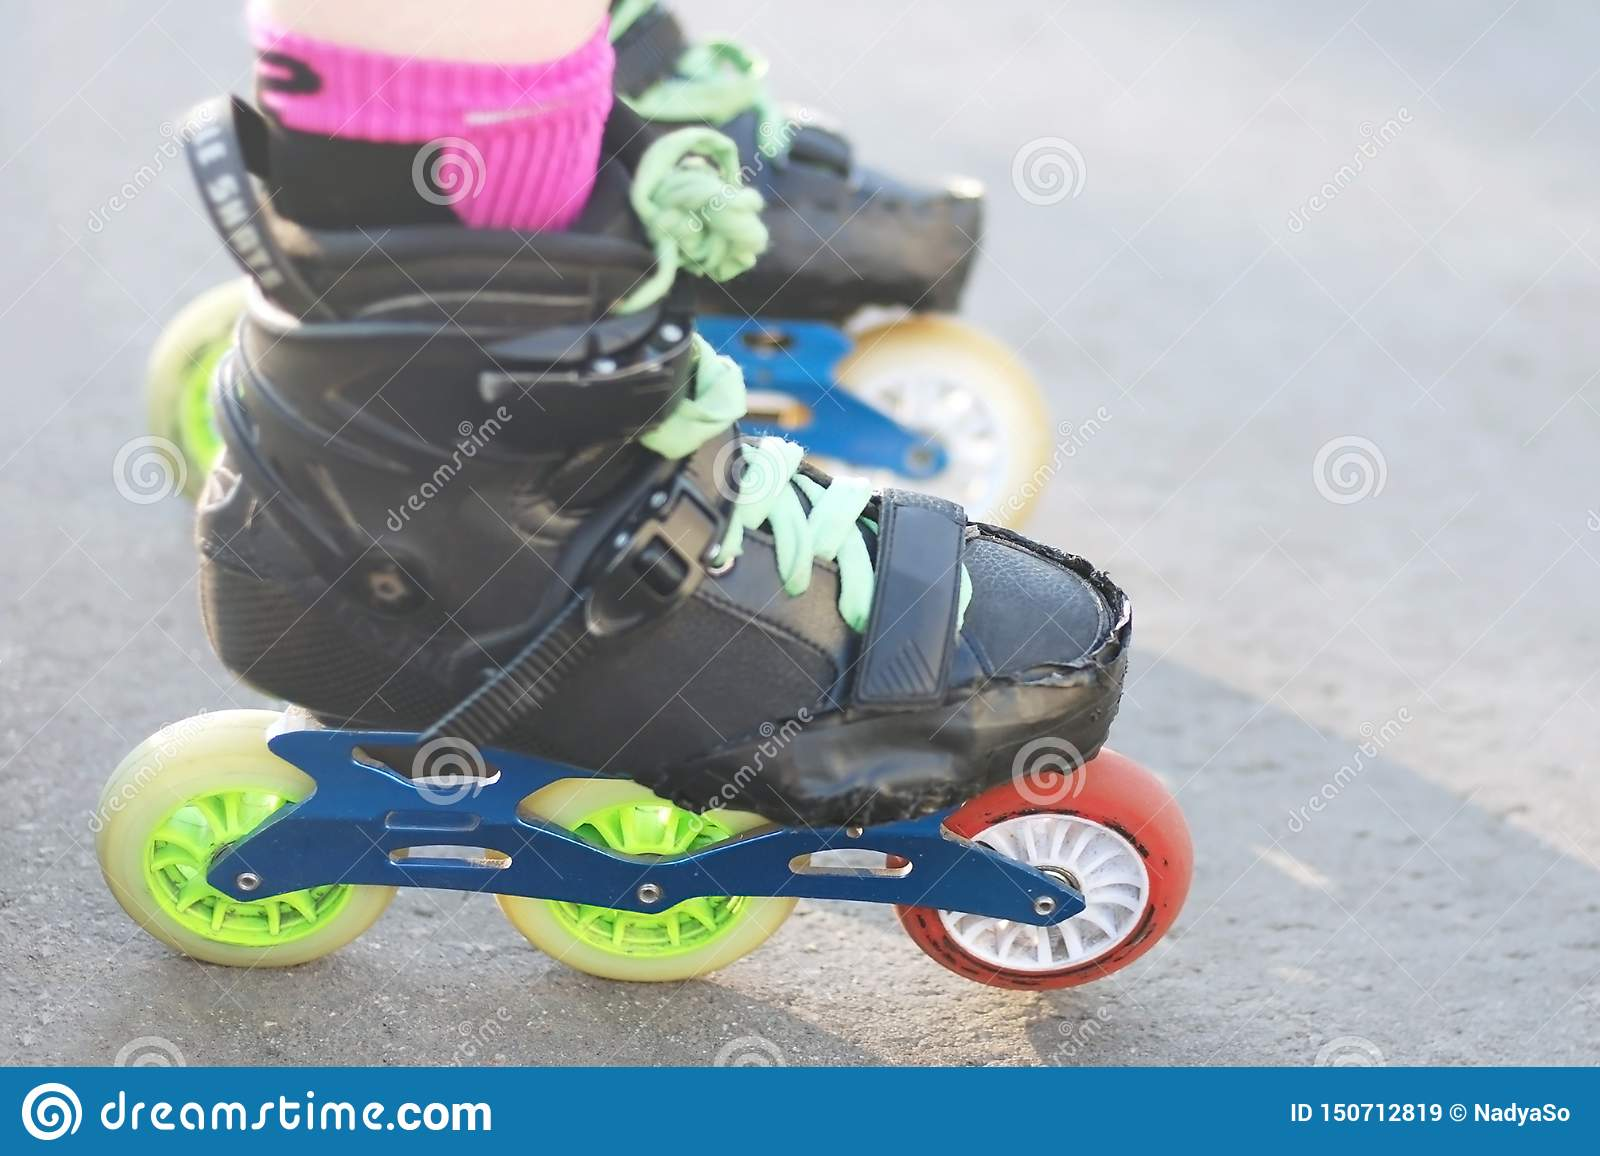 Roller`s legs wearing rollers for inline and slalom skating